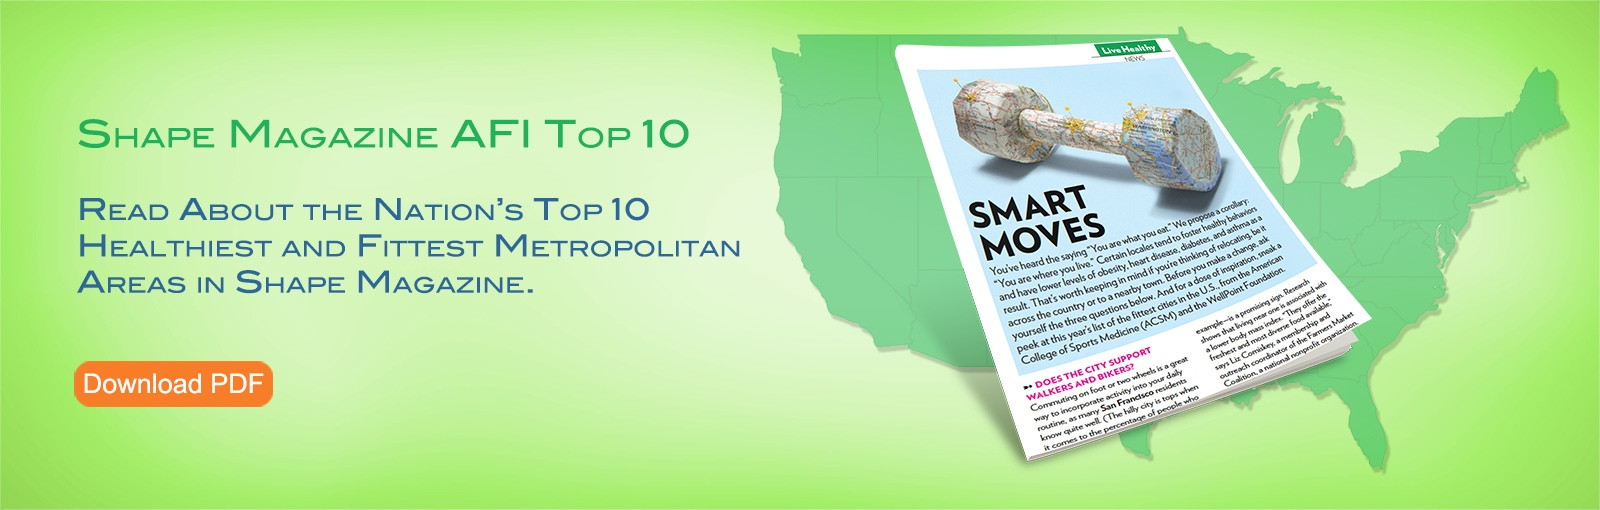 SHAPE Magazine AFI Top 10